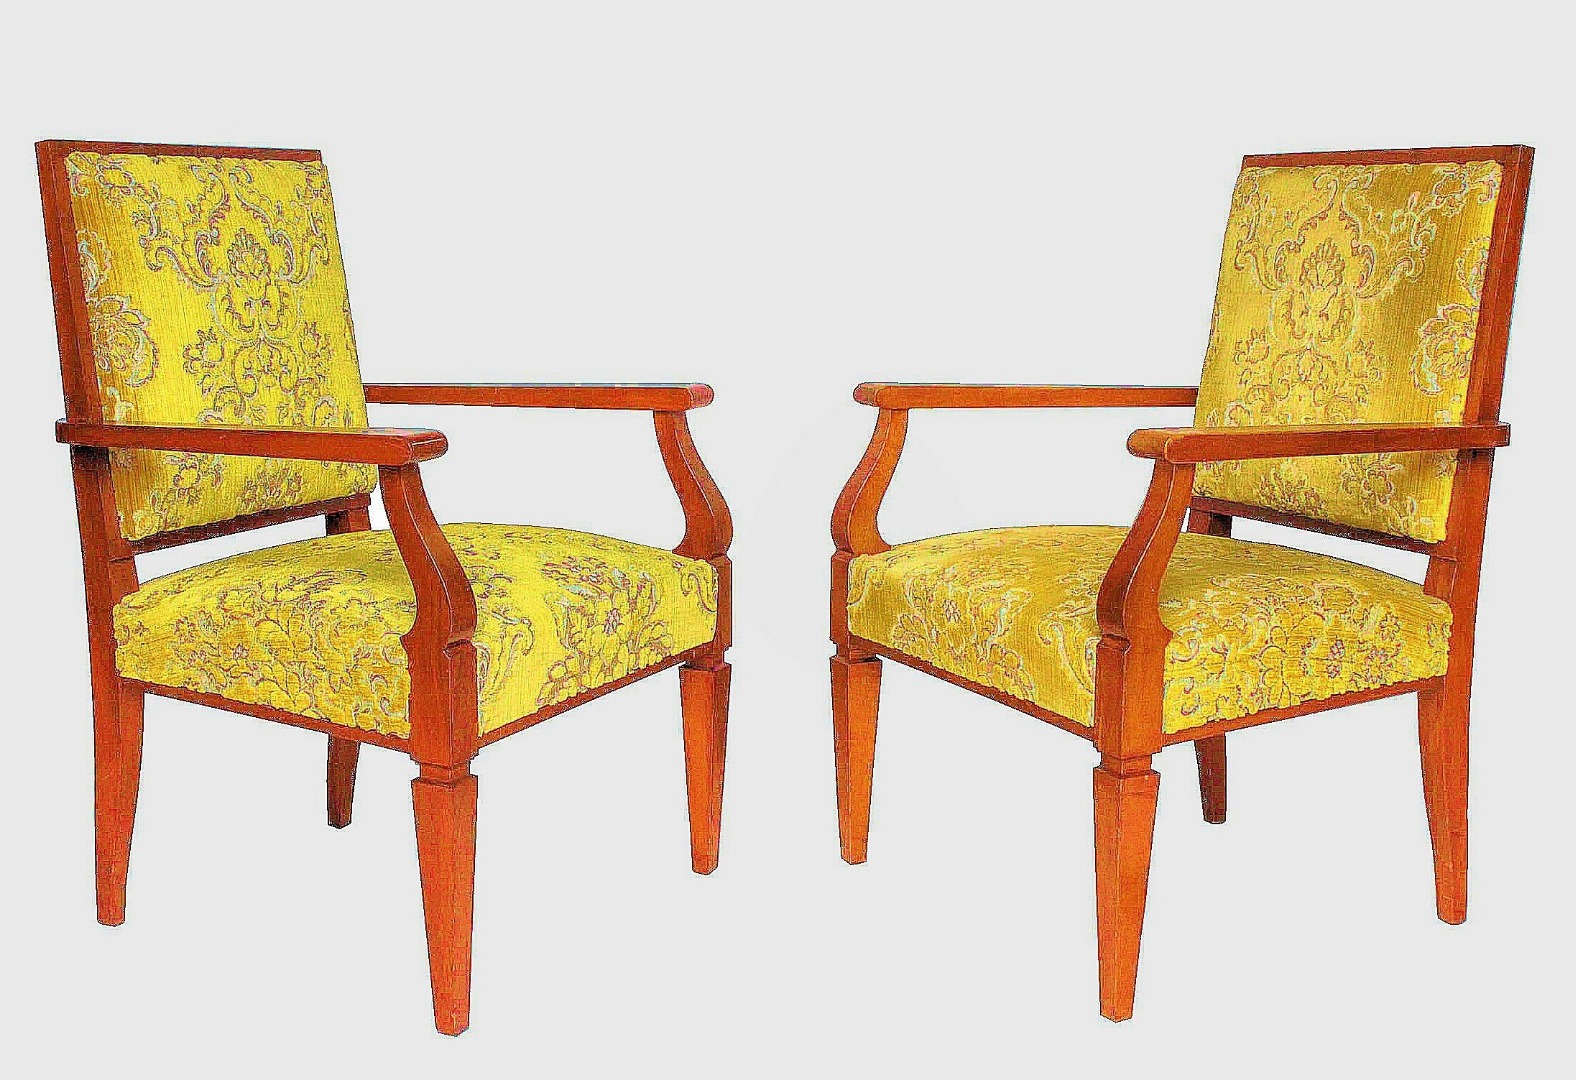 PAIR OF ARMCHAIRS BY Maurice Pré (1907-1988)